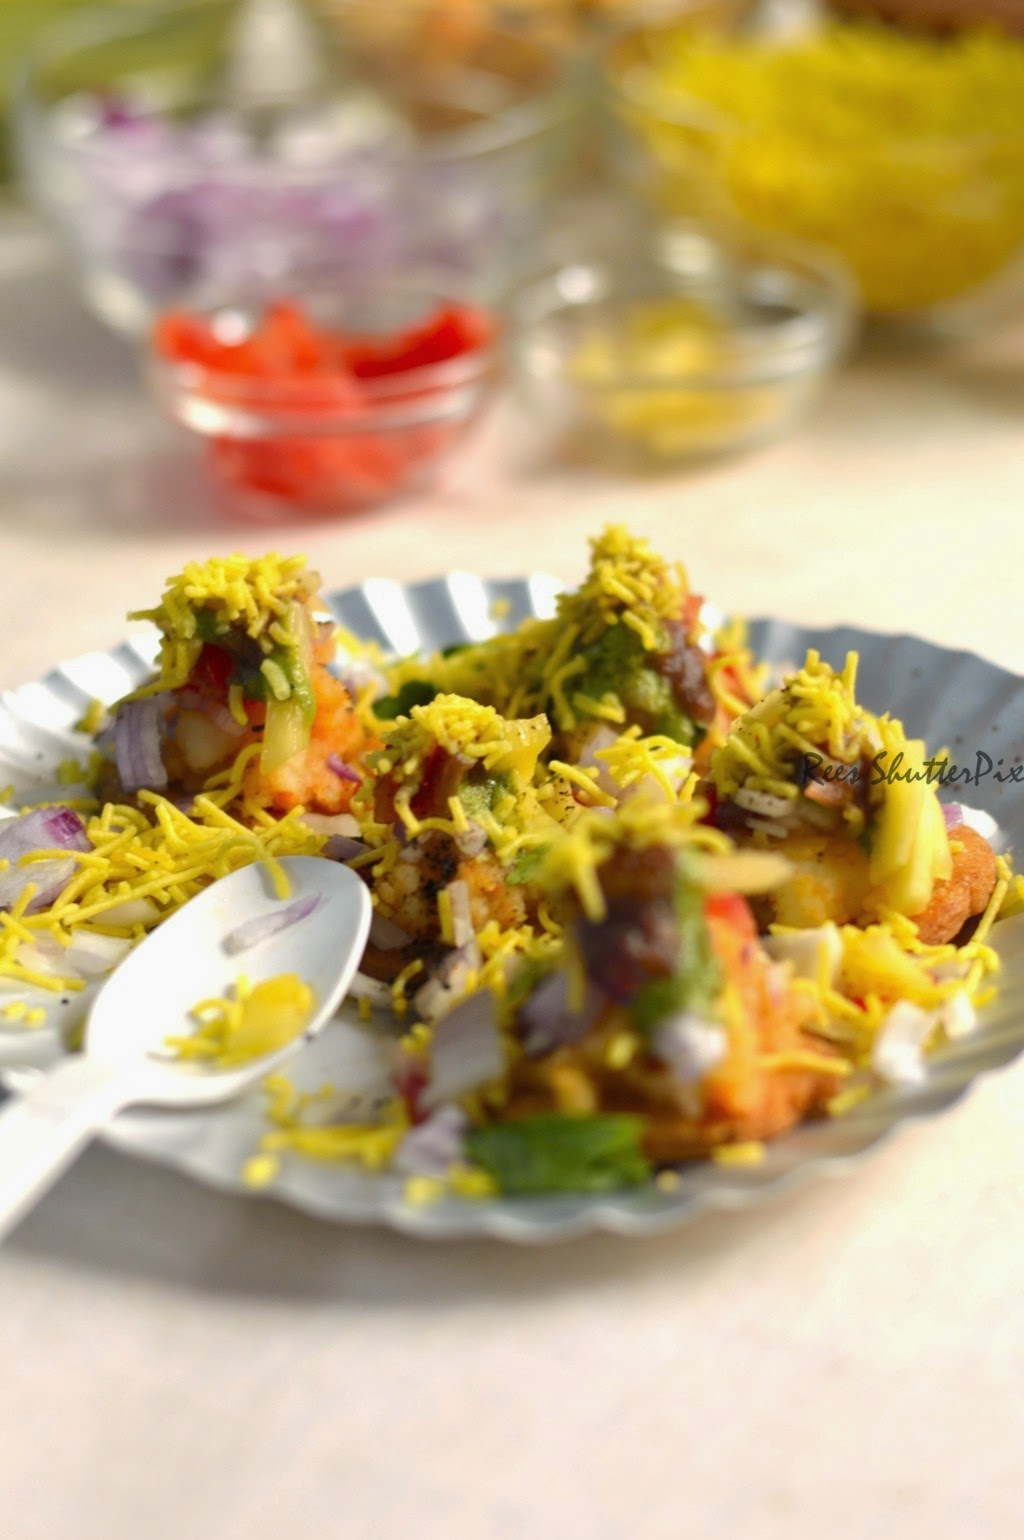 sev puri recipe, chaat recipes, papdi chaat recipe, easy papdi chat, dahi papdi chat recipe,